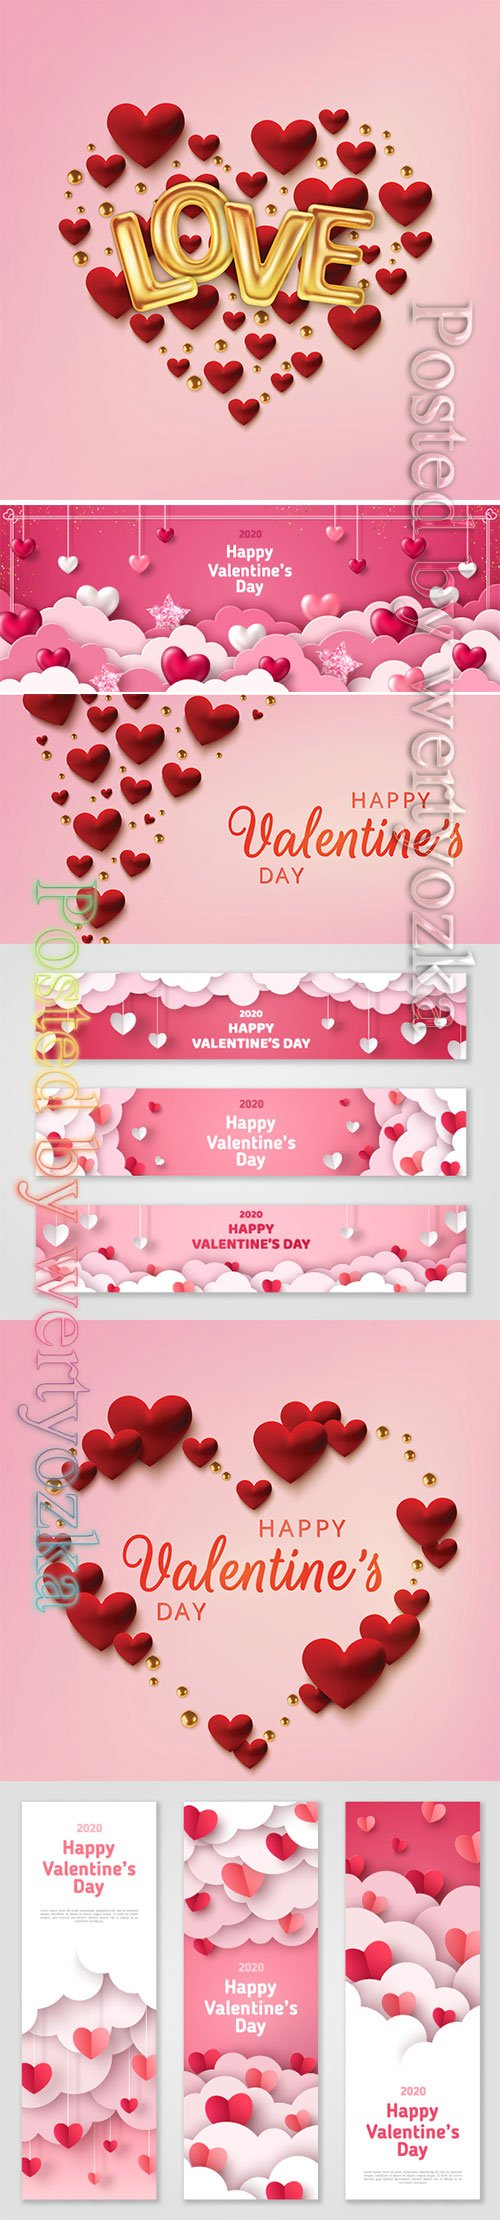 Valentines day vector background with heart # 7